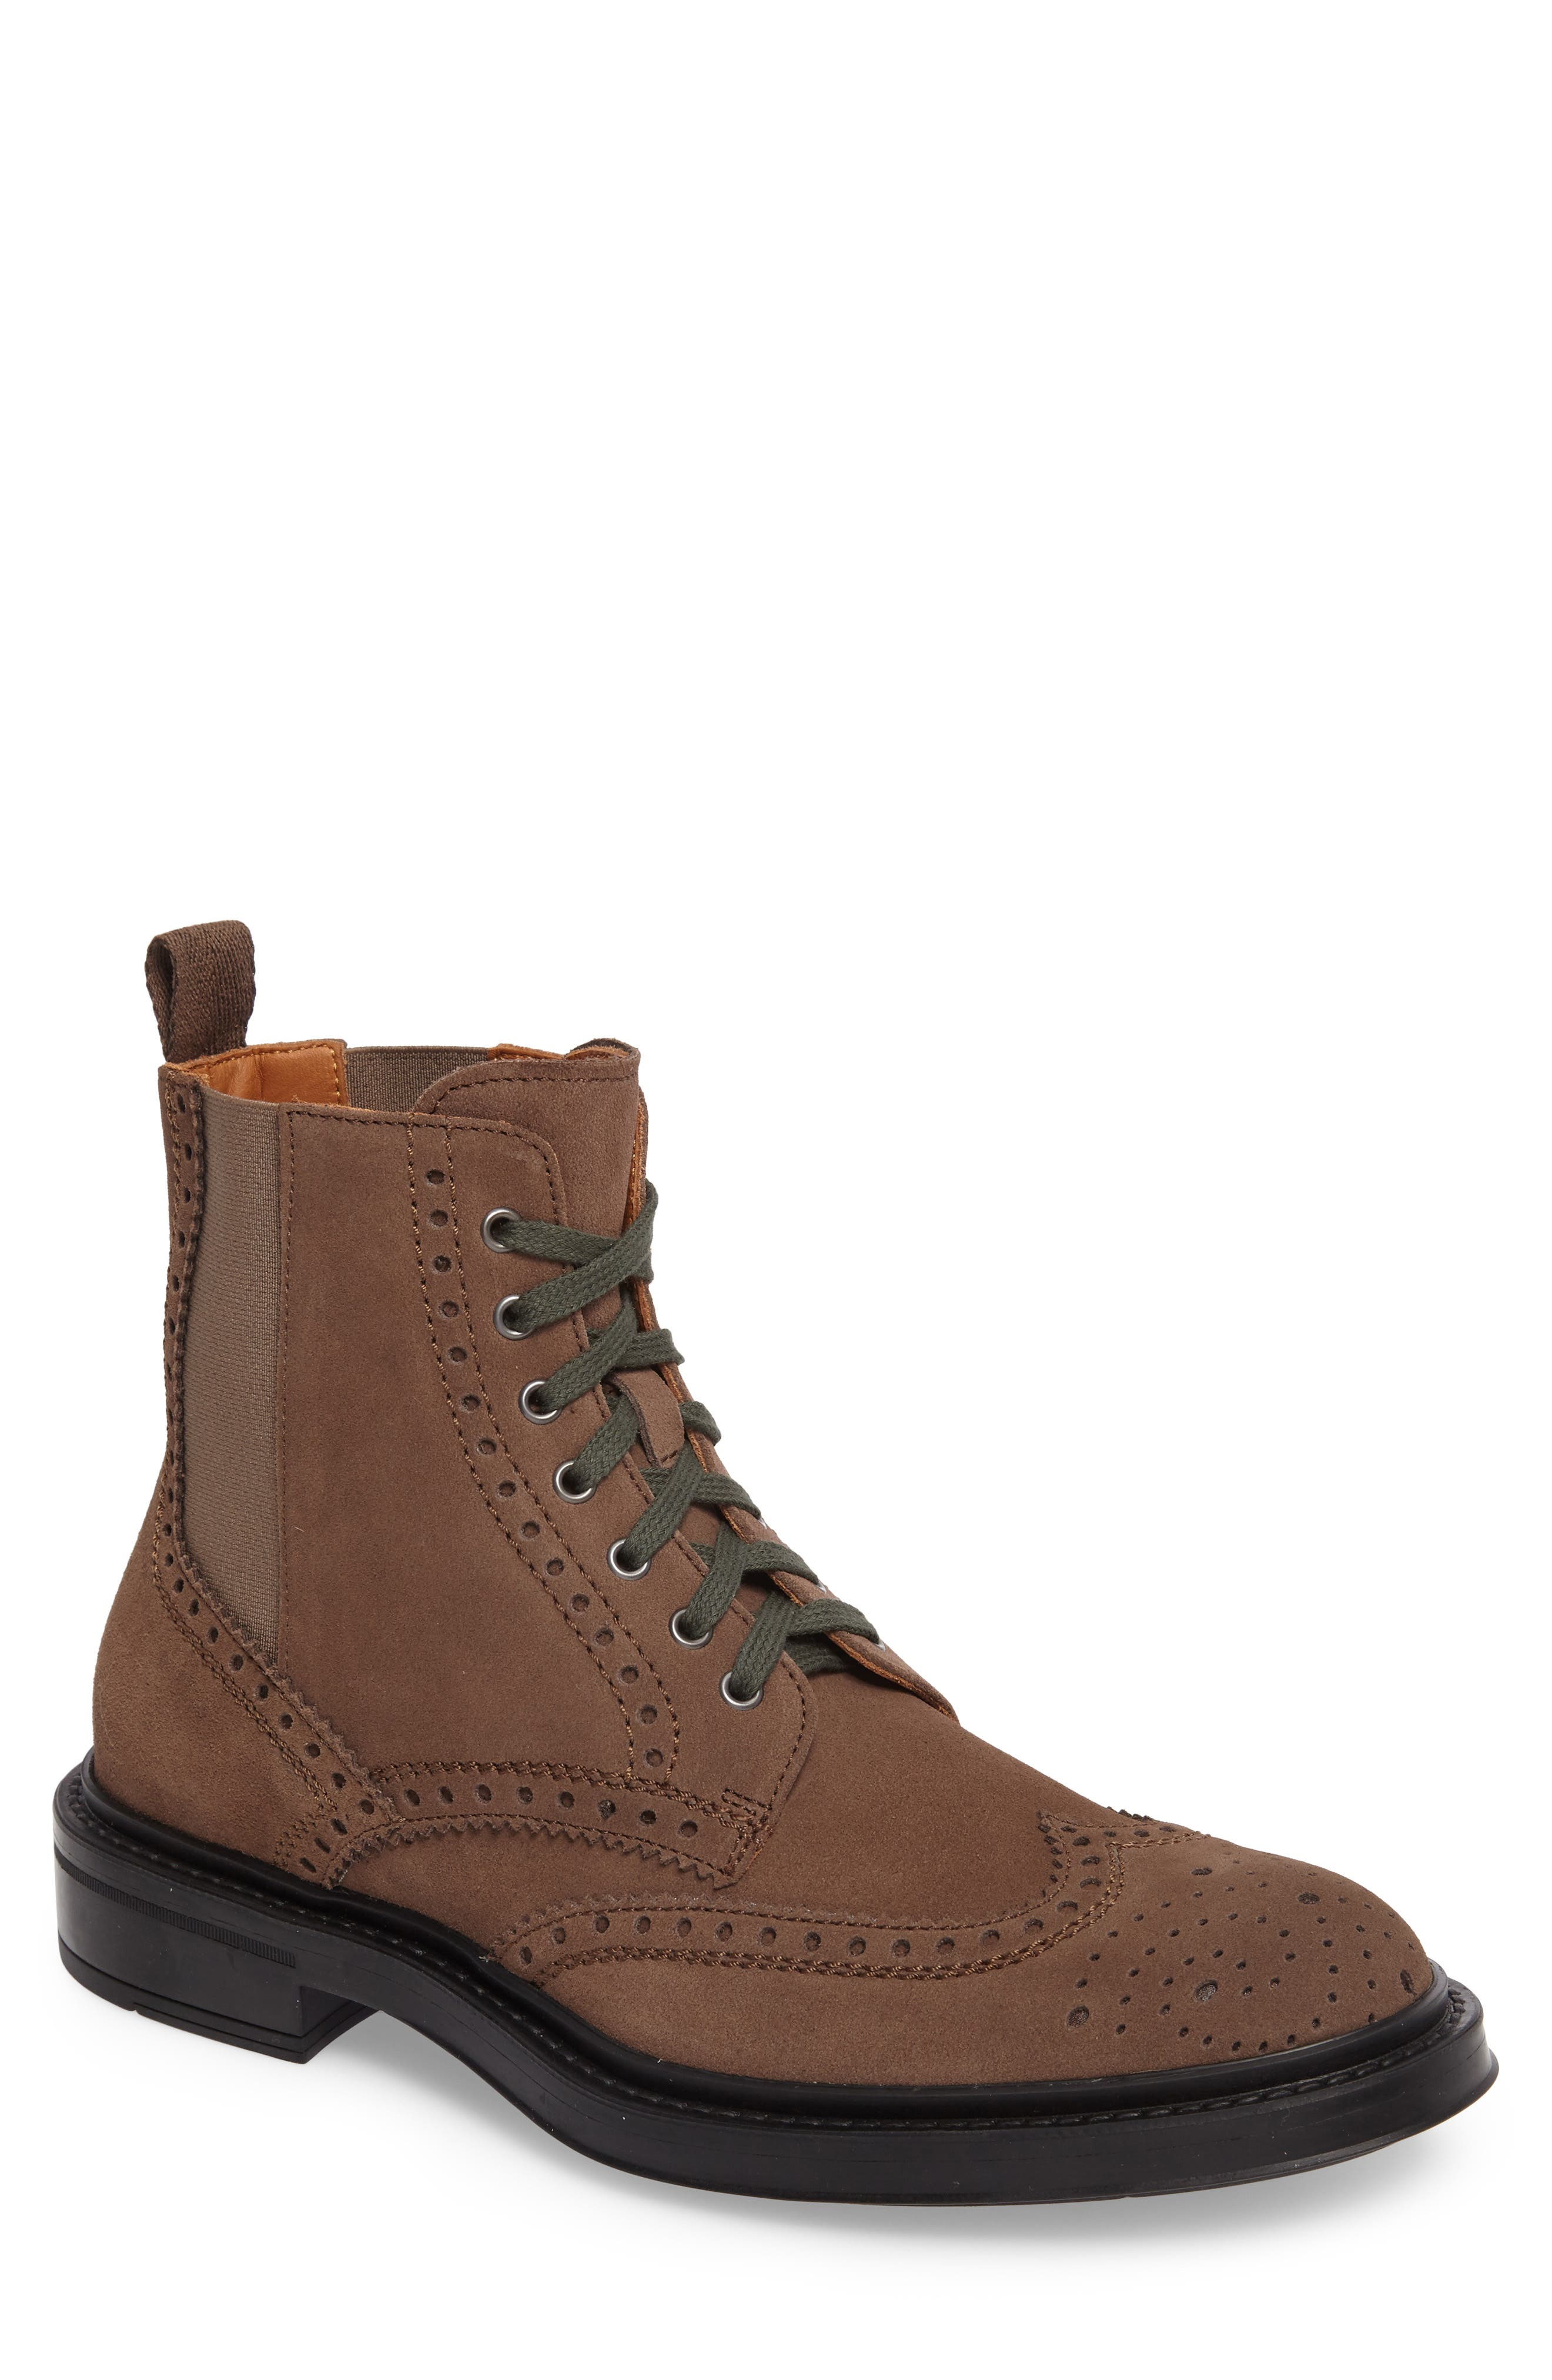 Lawrence Wingtip Boot,                         Main,                         color, Dark Taupe